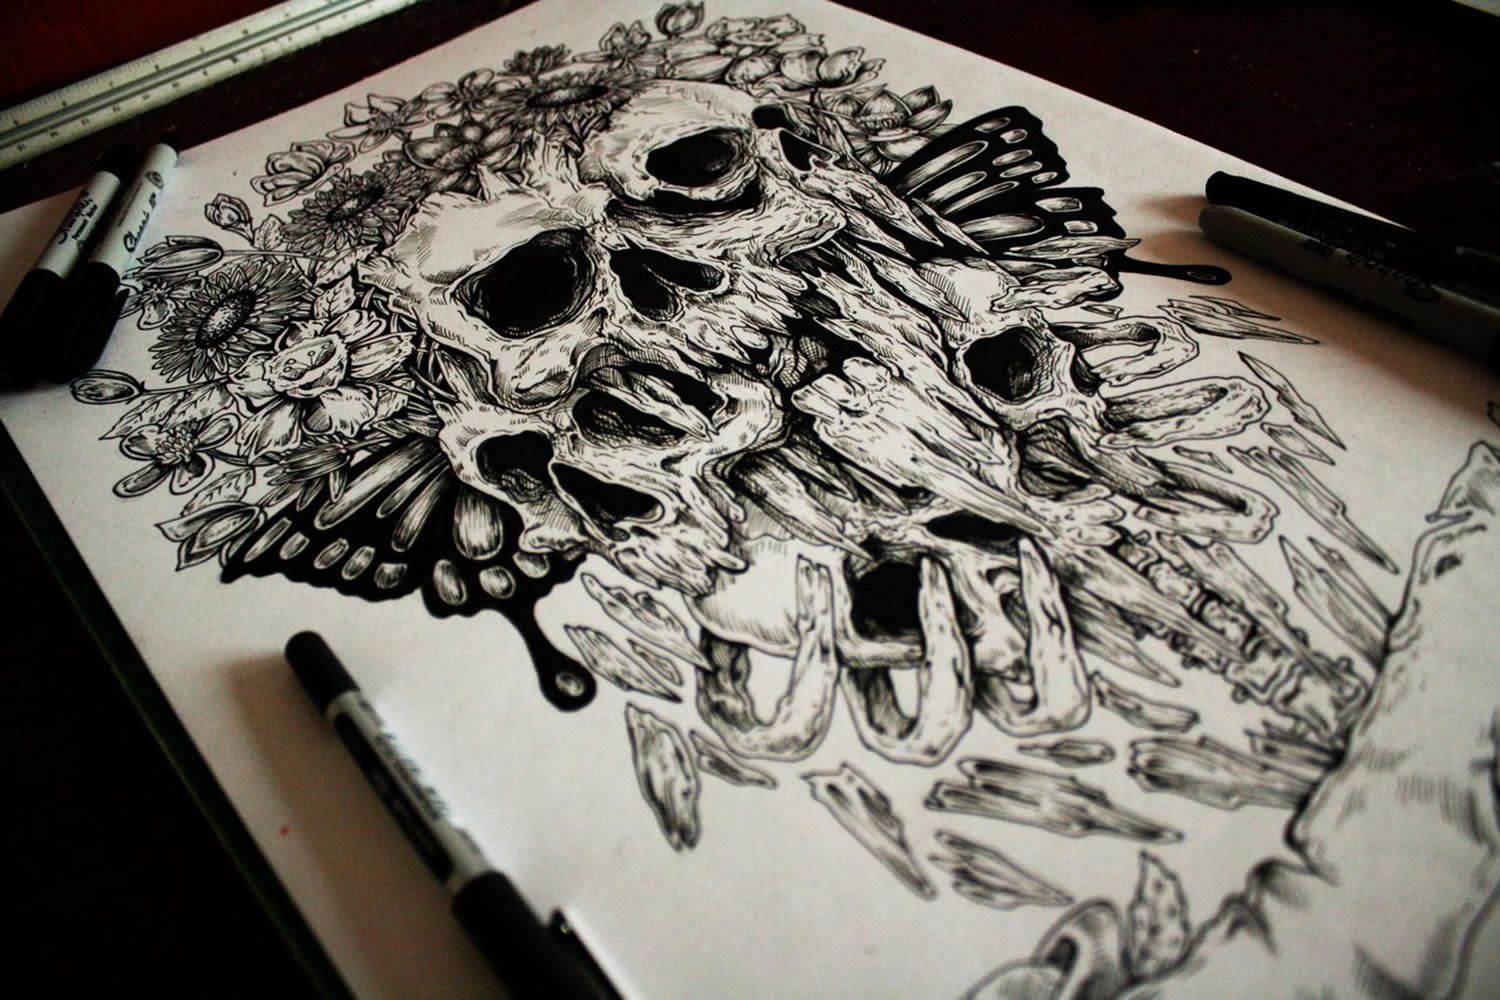 human skull in black ink by e.g. the freak